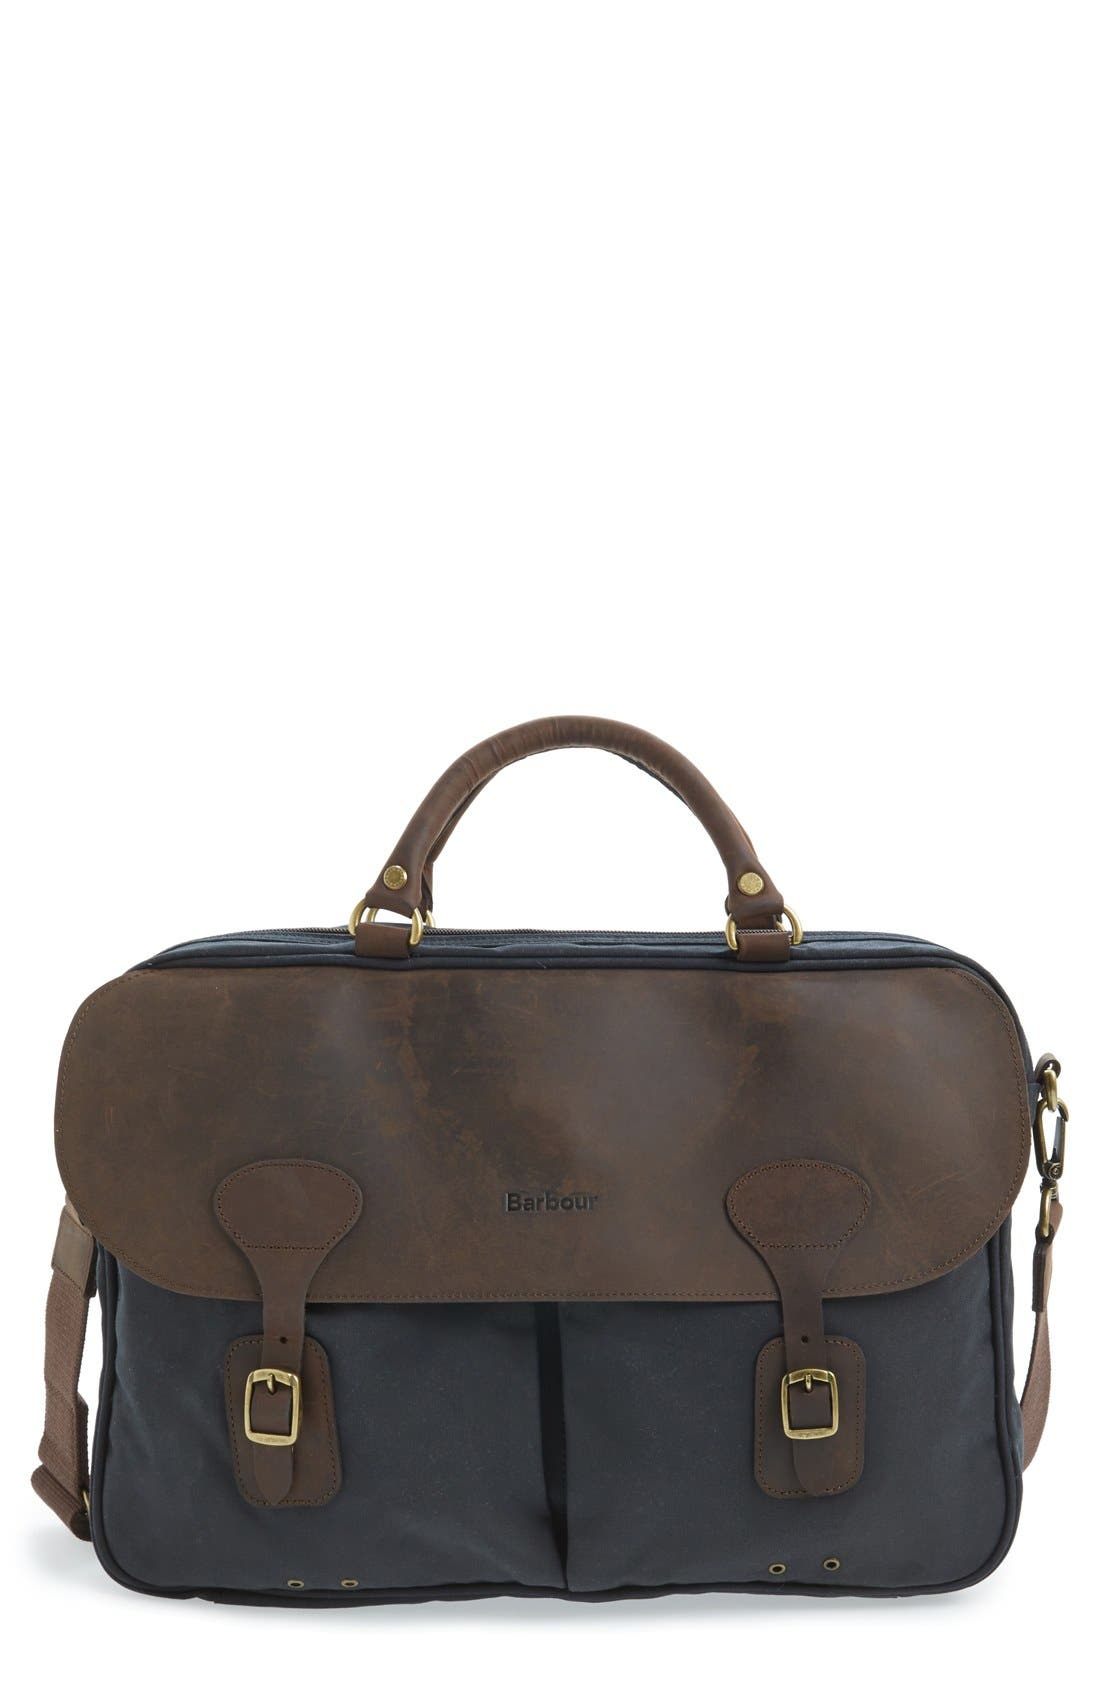 BARBOUR Waxed Canvas Briefcase, Main, color, NAVY